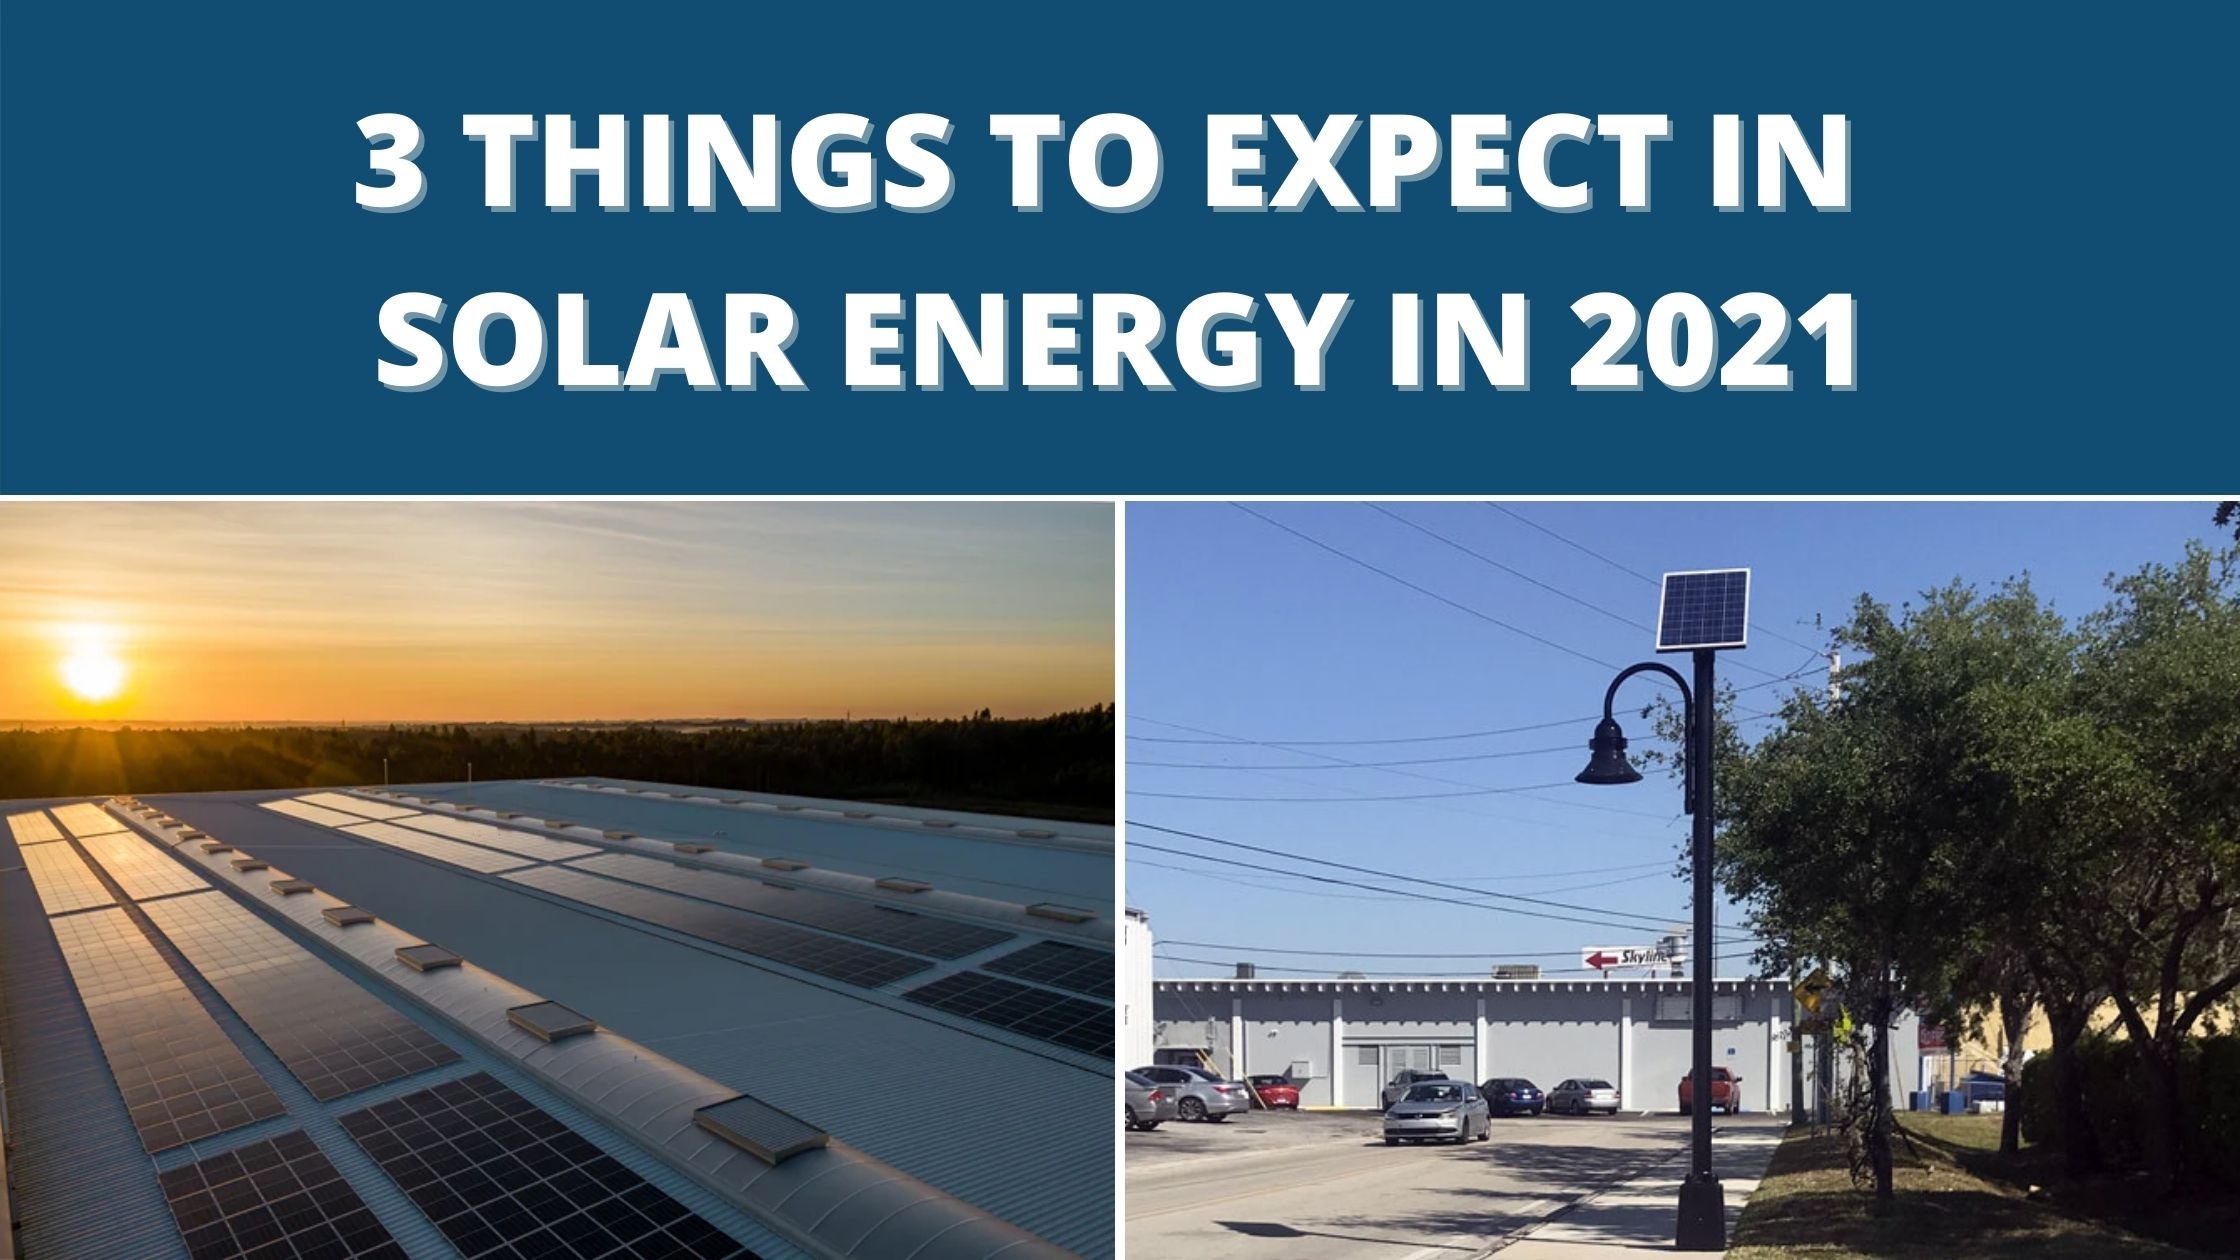 3 Things to Expect in Solar Energy in 2021